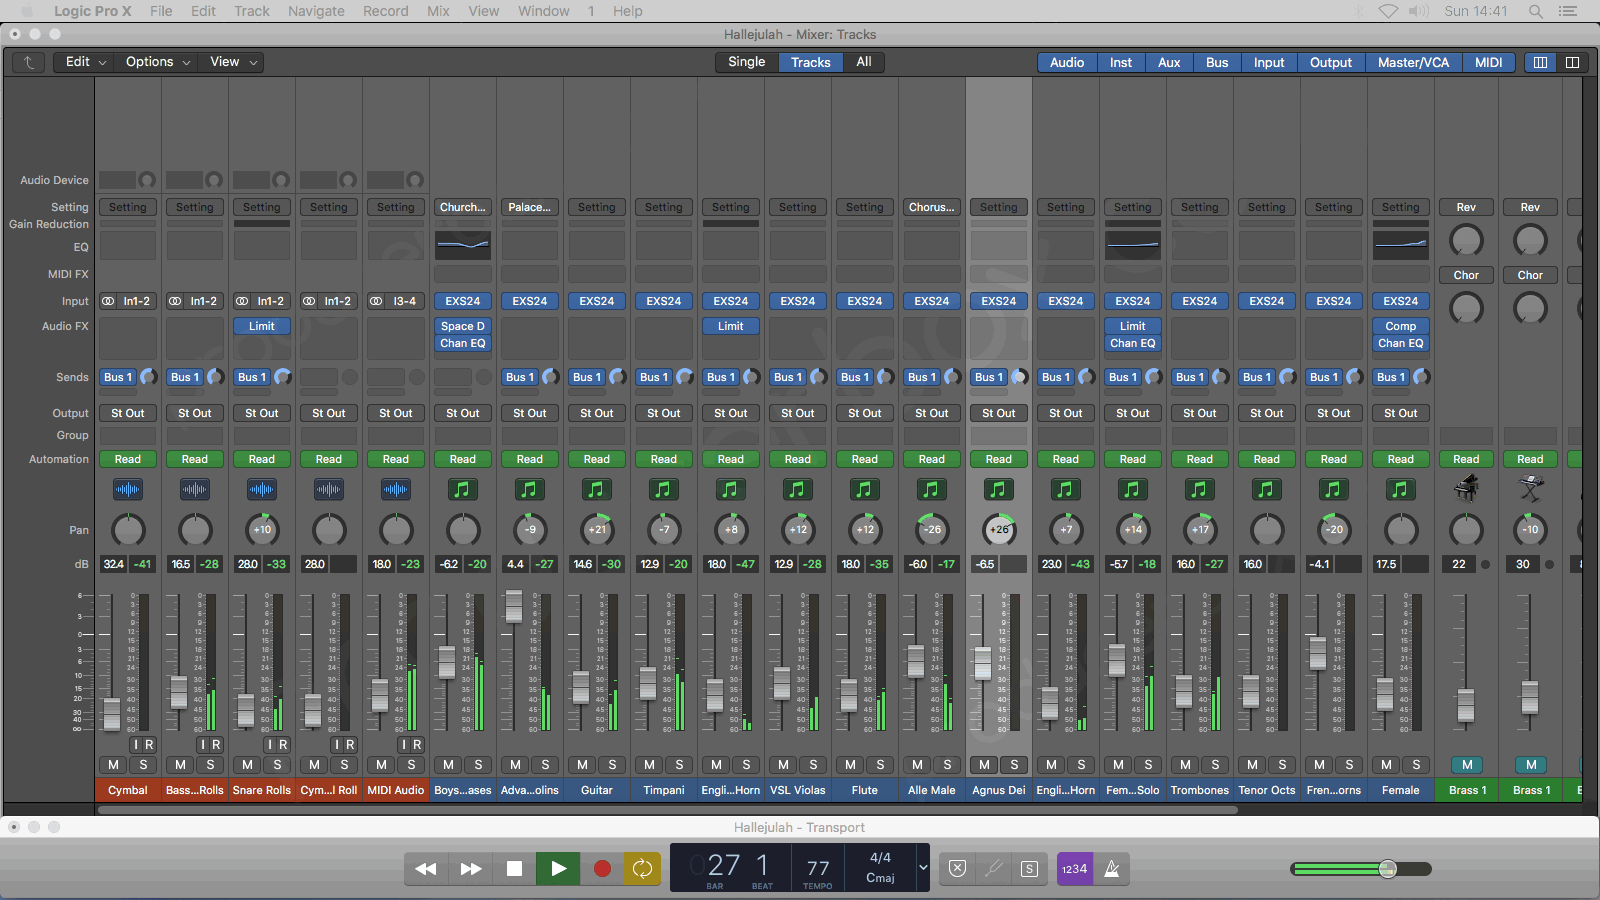 Logic Pro X Mixer Window - Allelujah